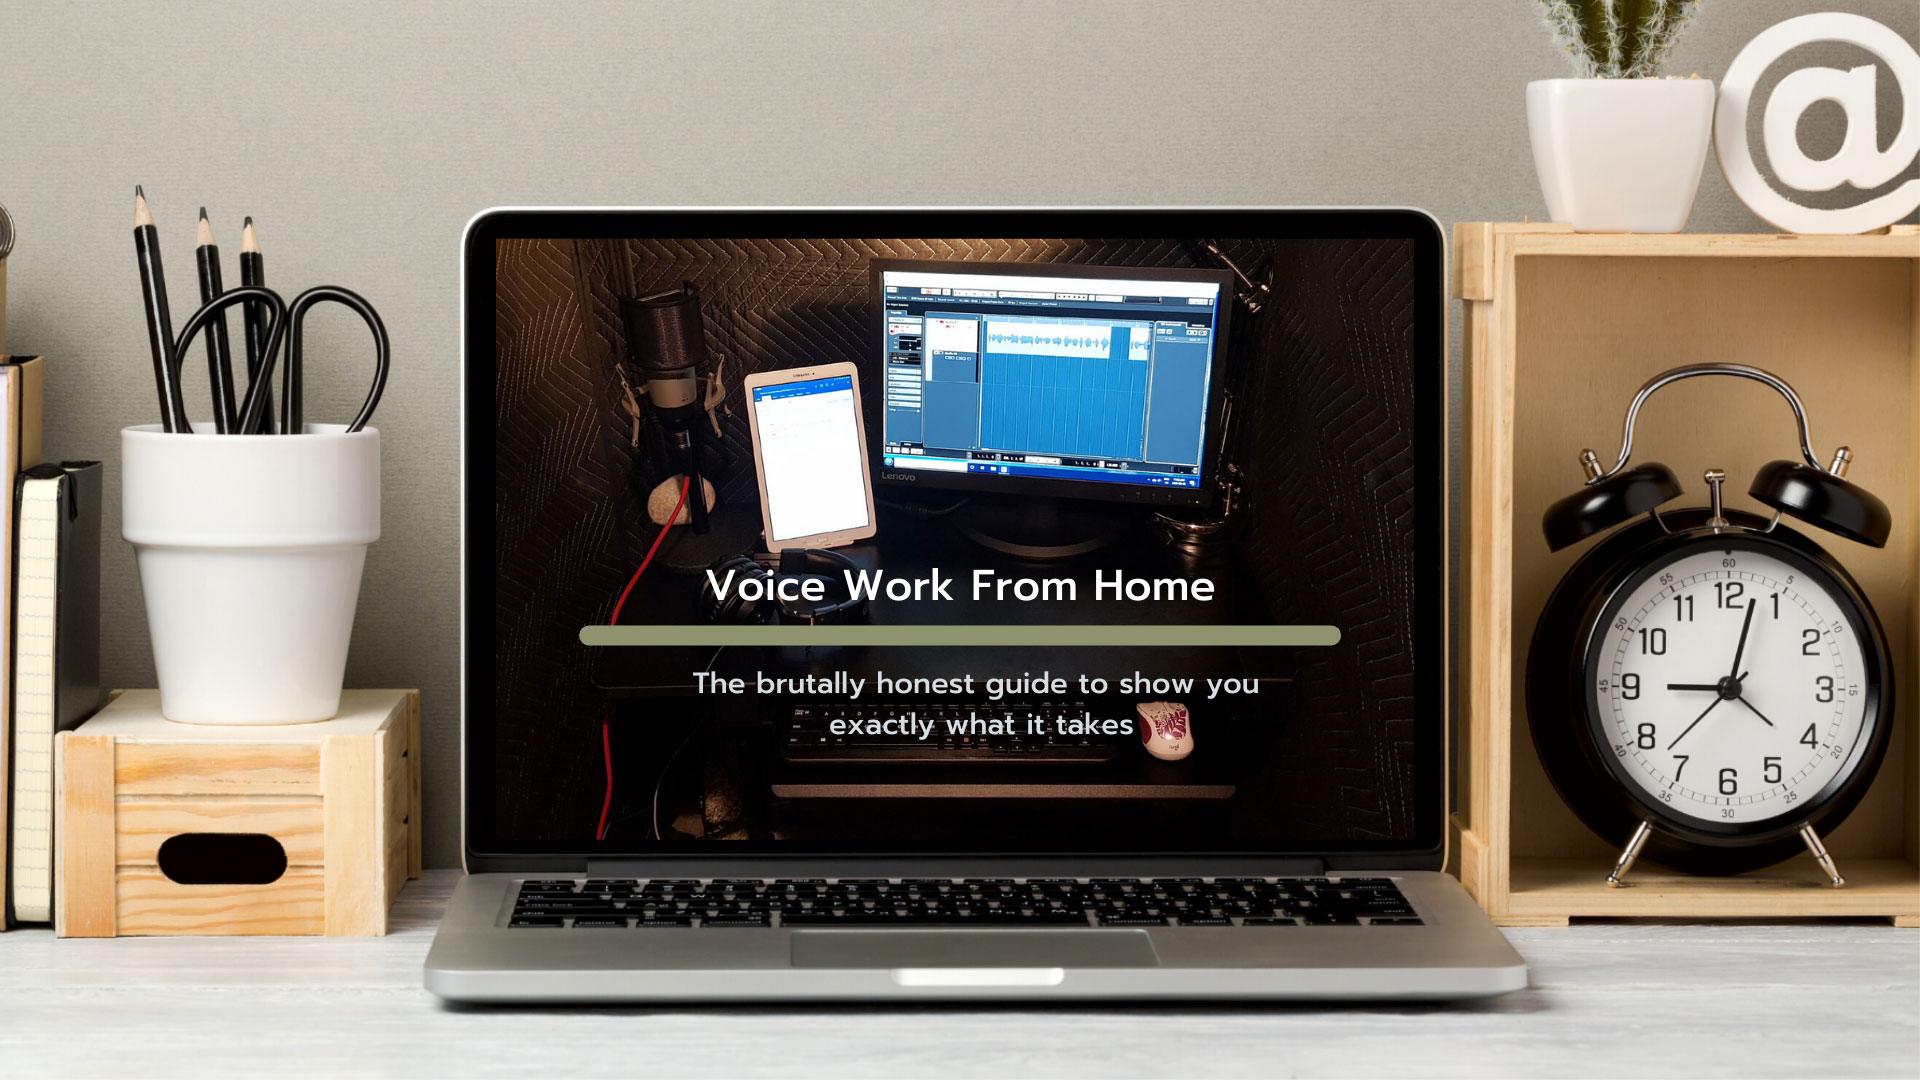 Voice Work From Home